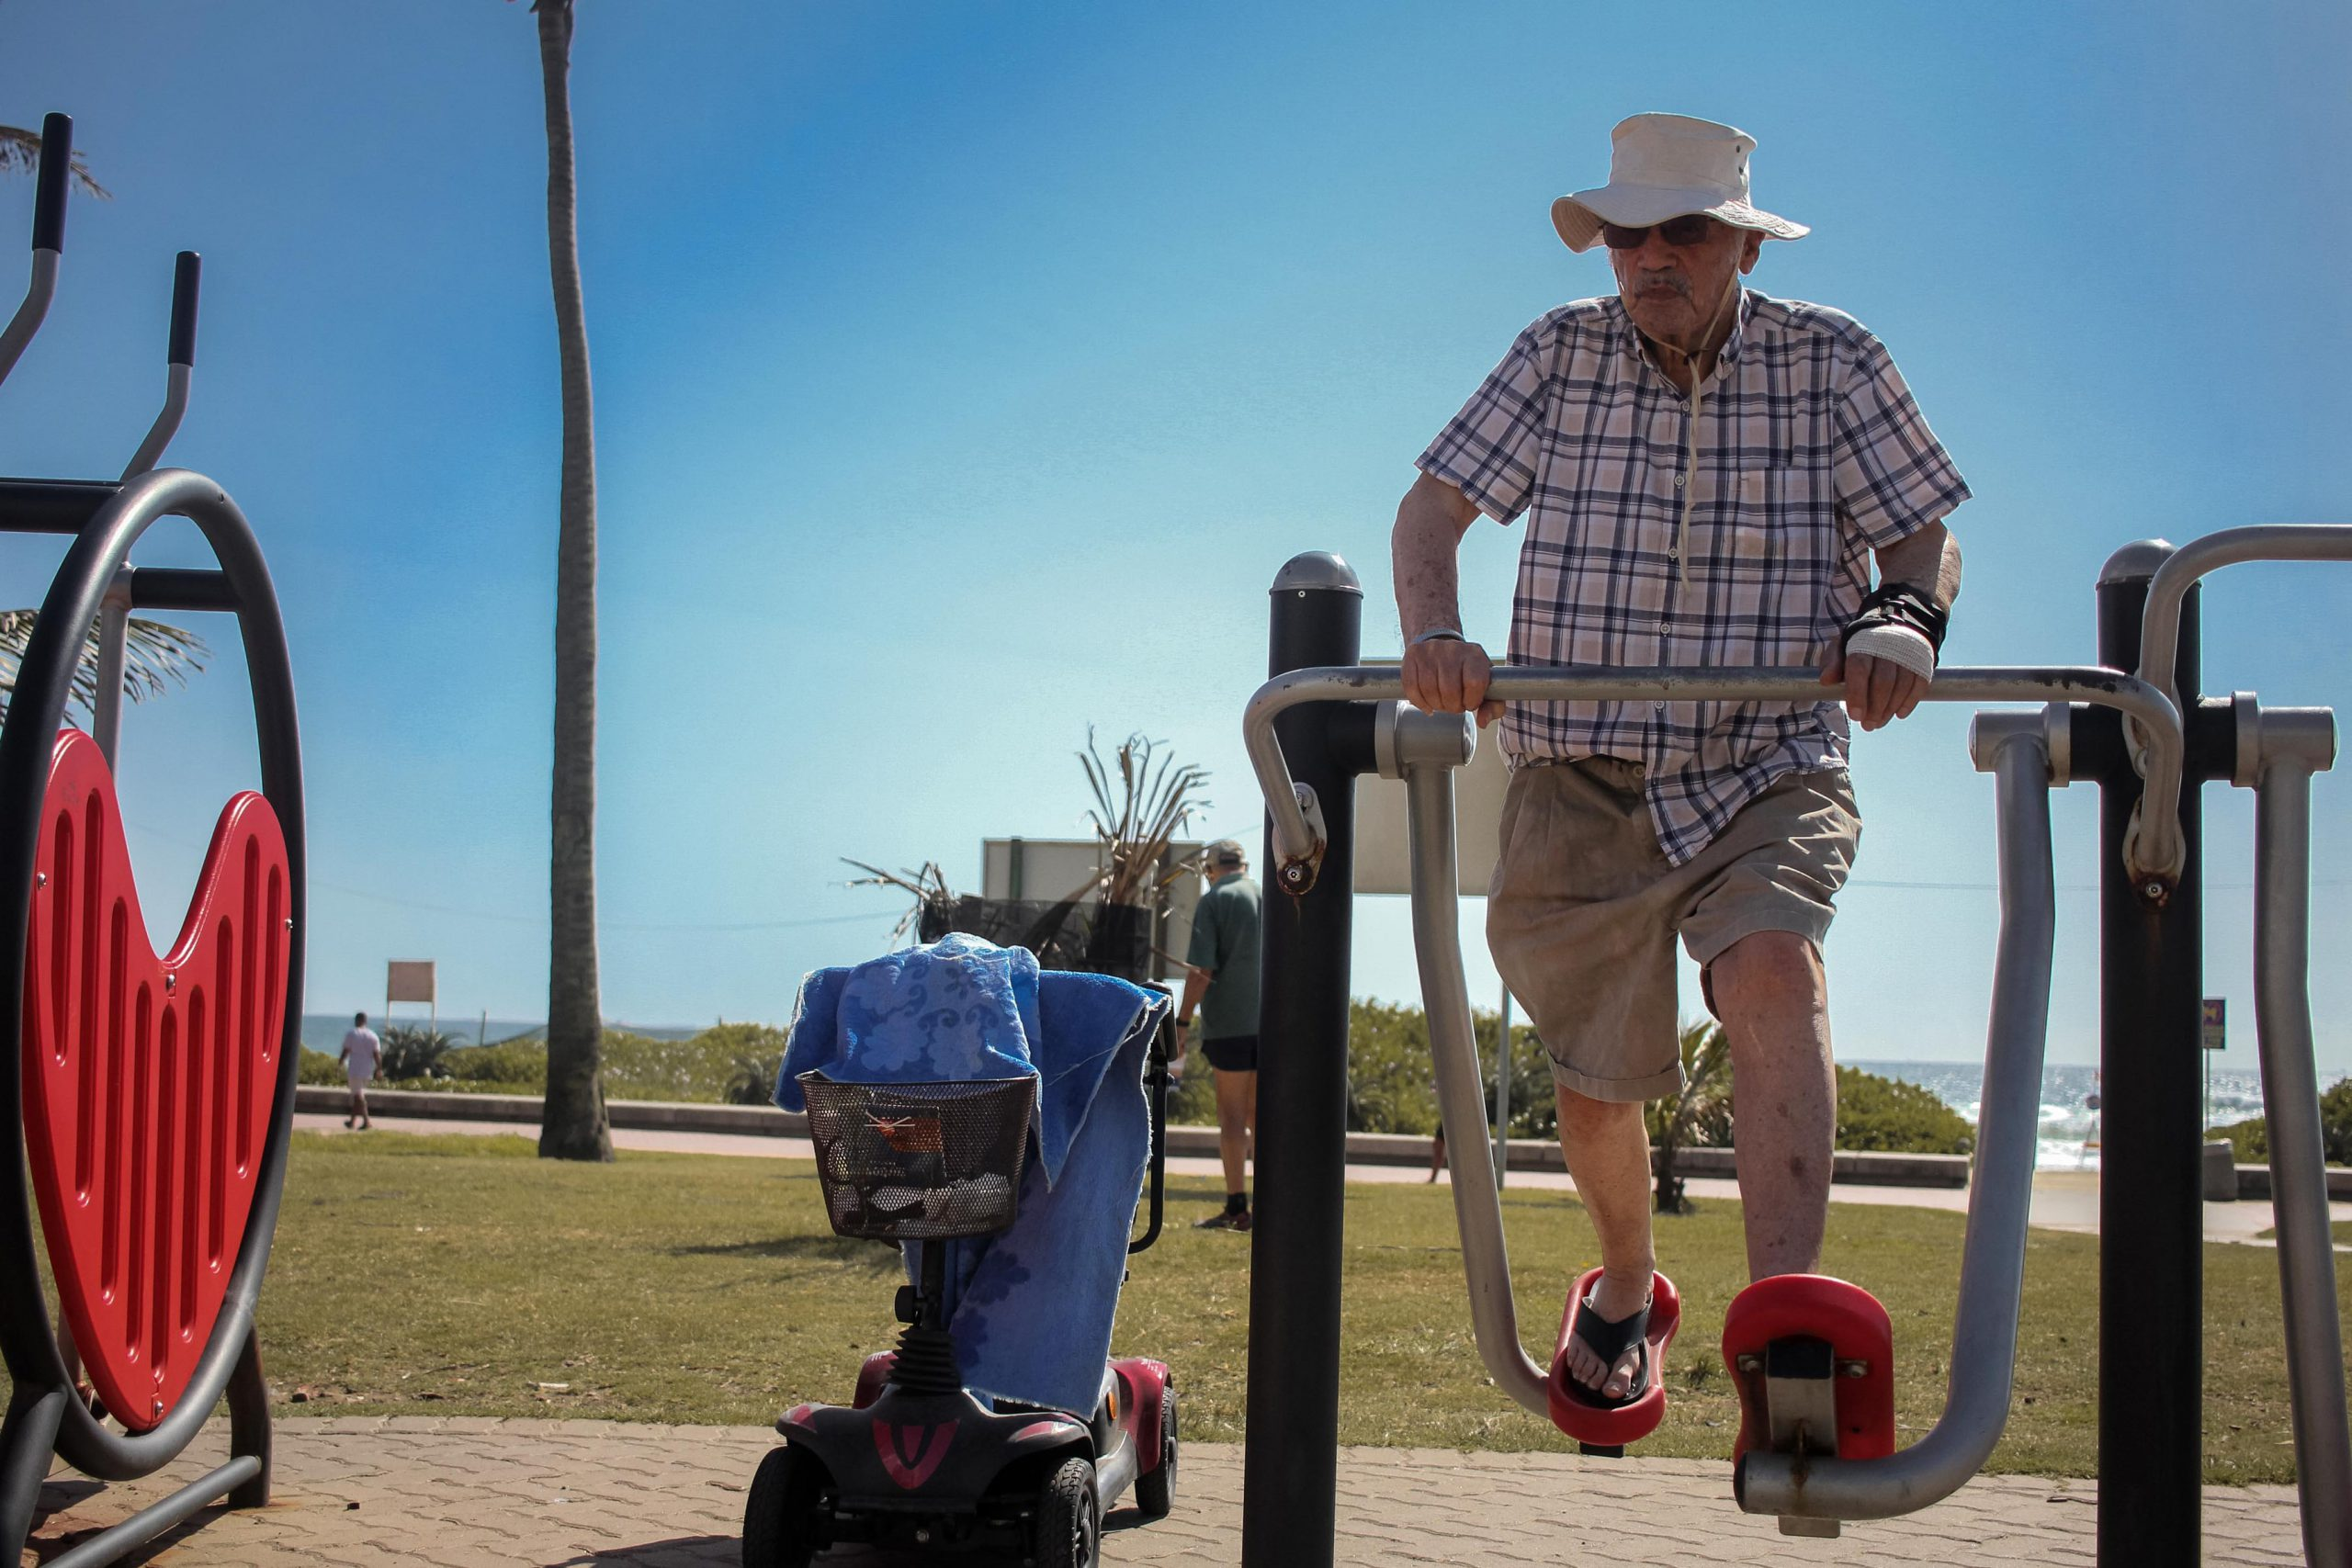 16 January 2020: Paul Jacobs is a pensioner who lives in Durban North and uses the nearby outdoor gym to keep fit.